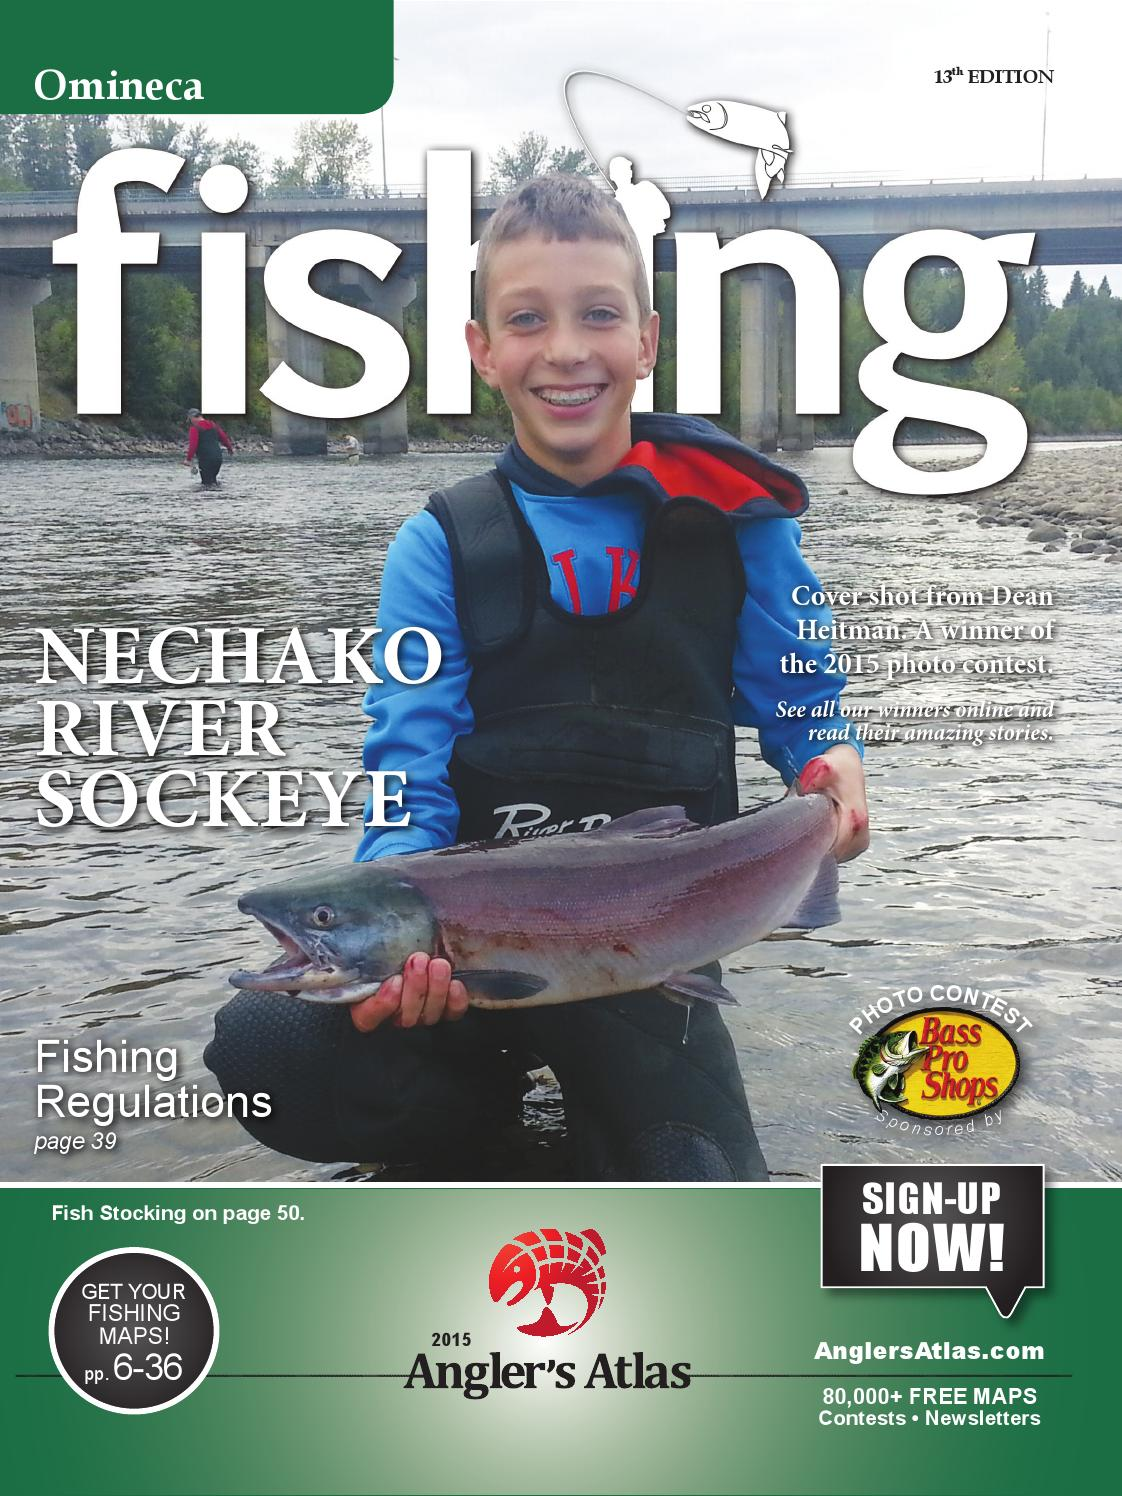 2015 omineca anglers atlas by prince george citizen issuu for One day fishing license ca